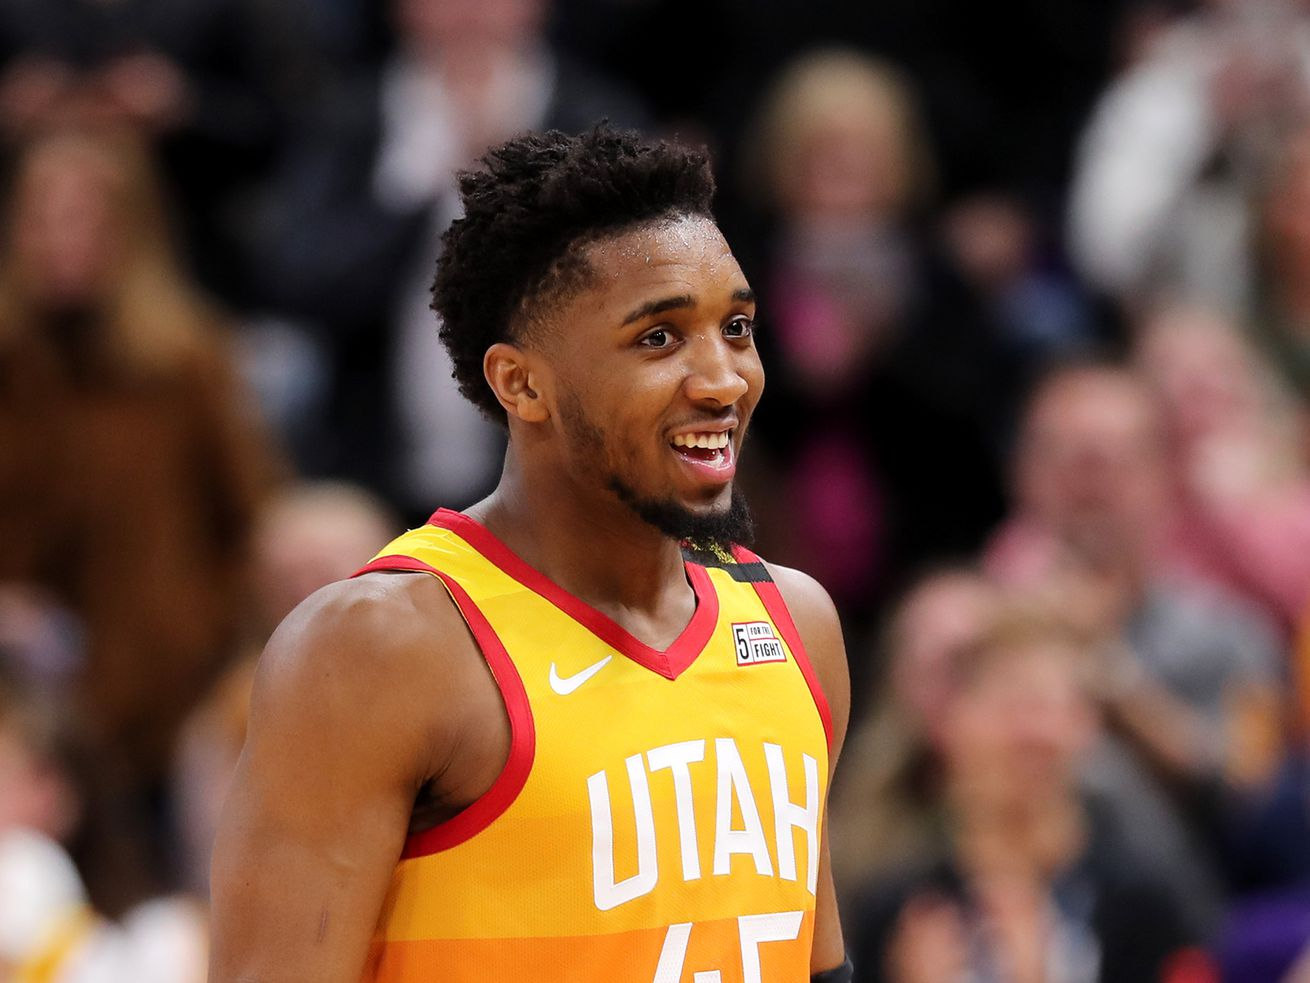 Utah Jazz guard Donovan Mitchell (45) smiles during a timeout as the Utah Jazz and the Miami Heat play in an NBA basketball game at Vivint Smart Home Arena in Salt Lake City on Wednesday, Feb. 12, 2020. Utah won 116-101.